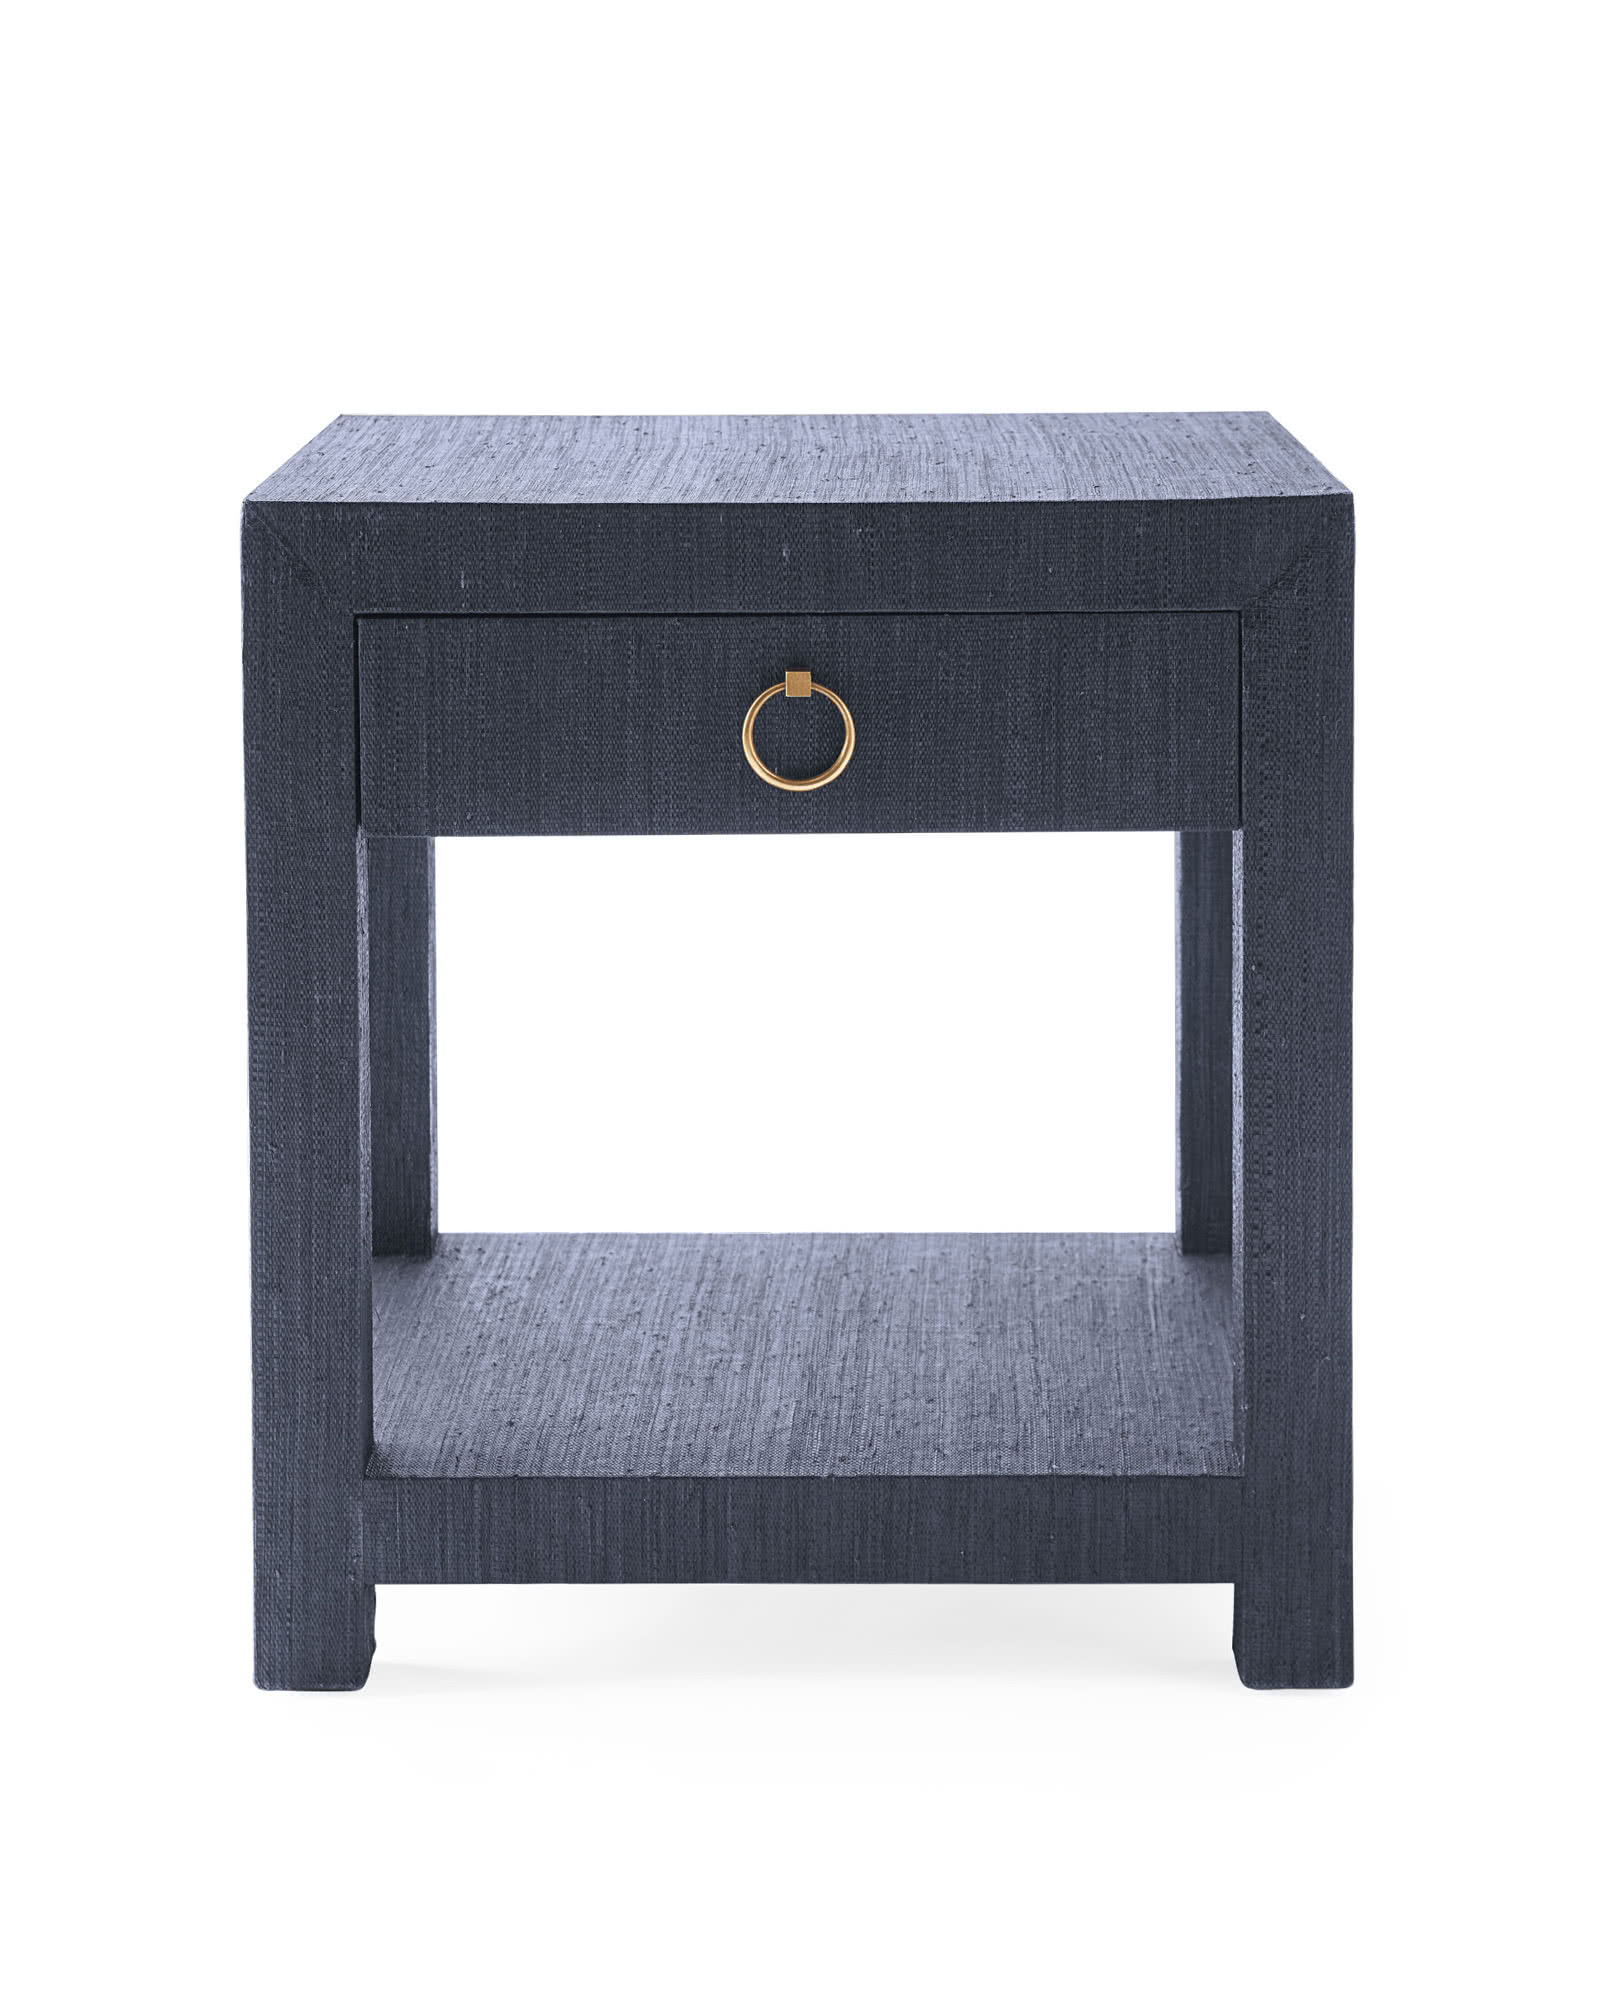 Blake Raffia 1-Drawer Nightstand, Indigo